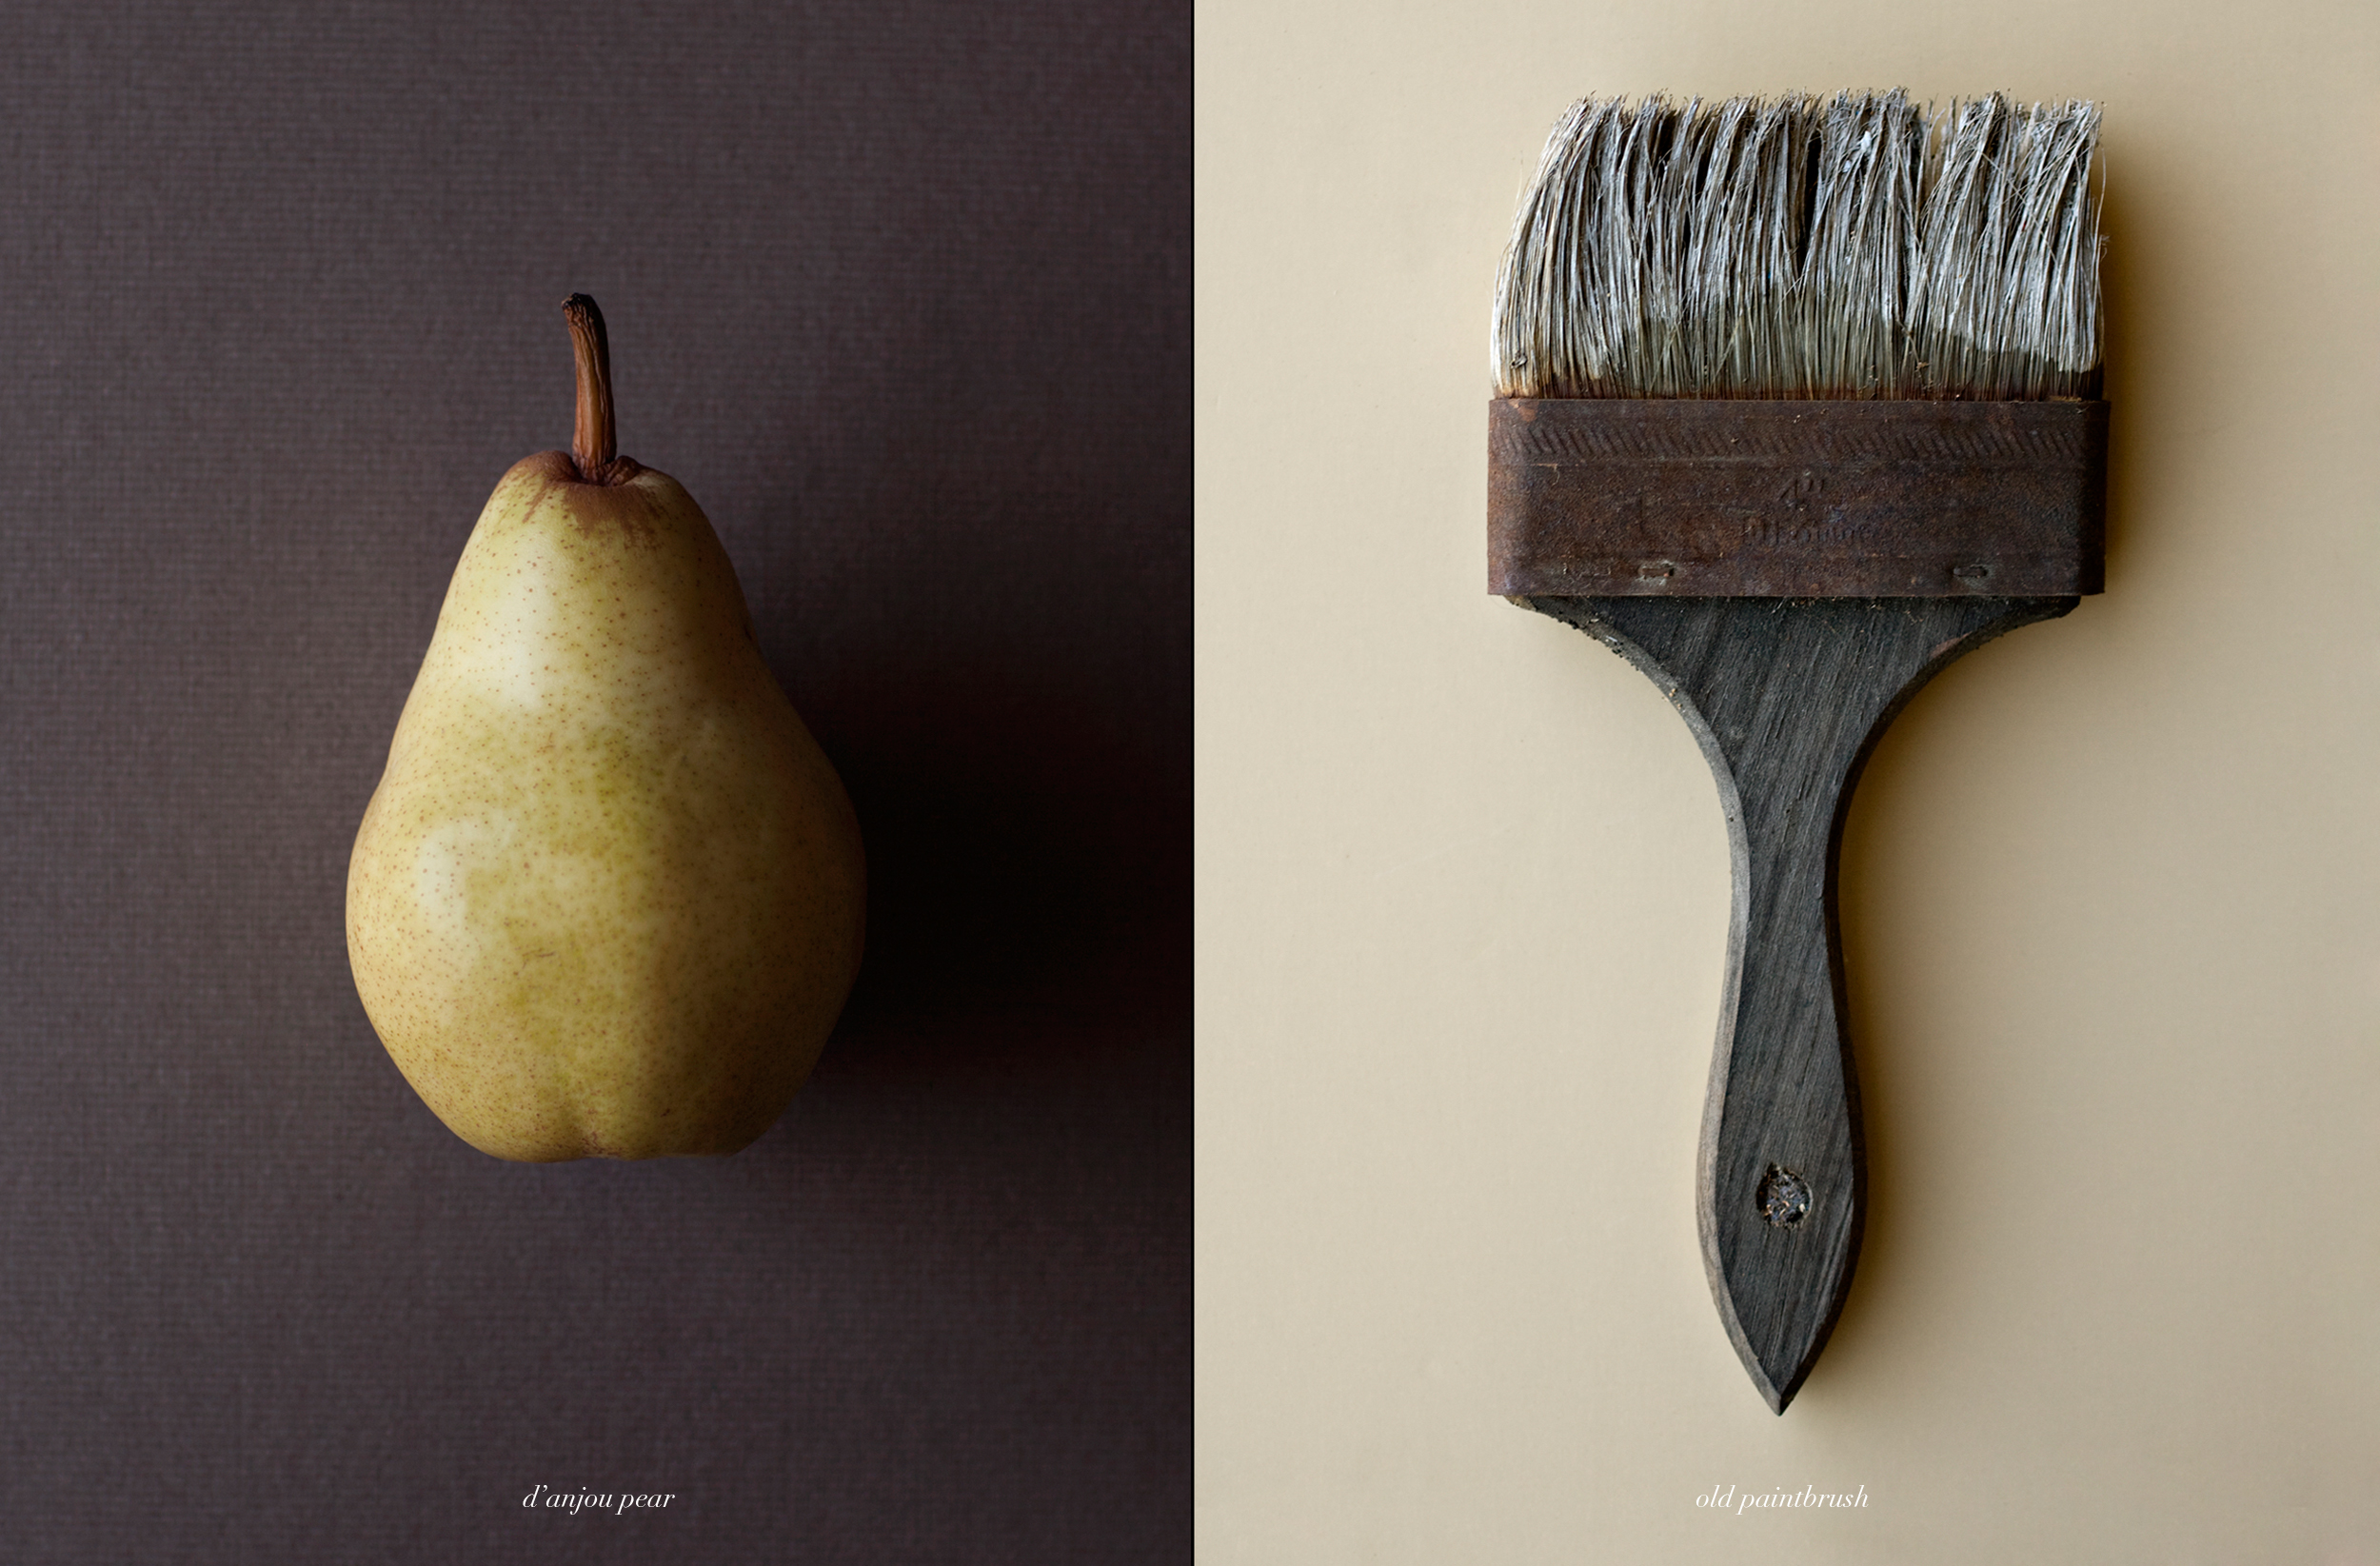 pear+paintbrush.jpg